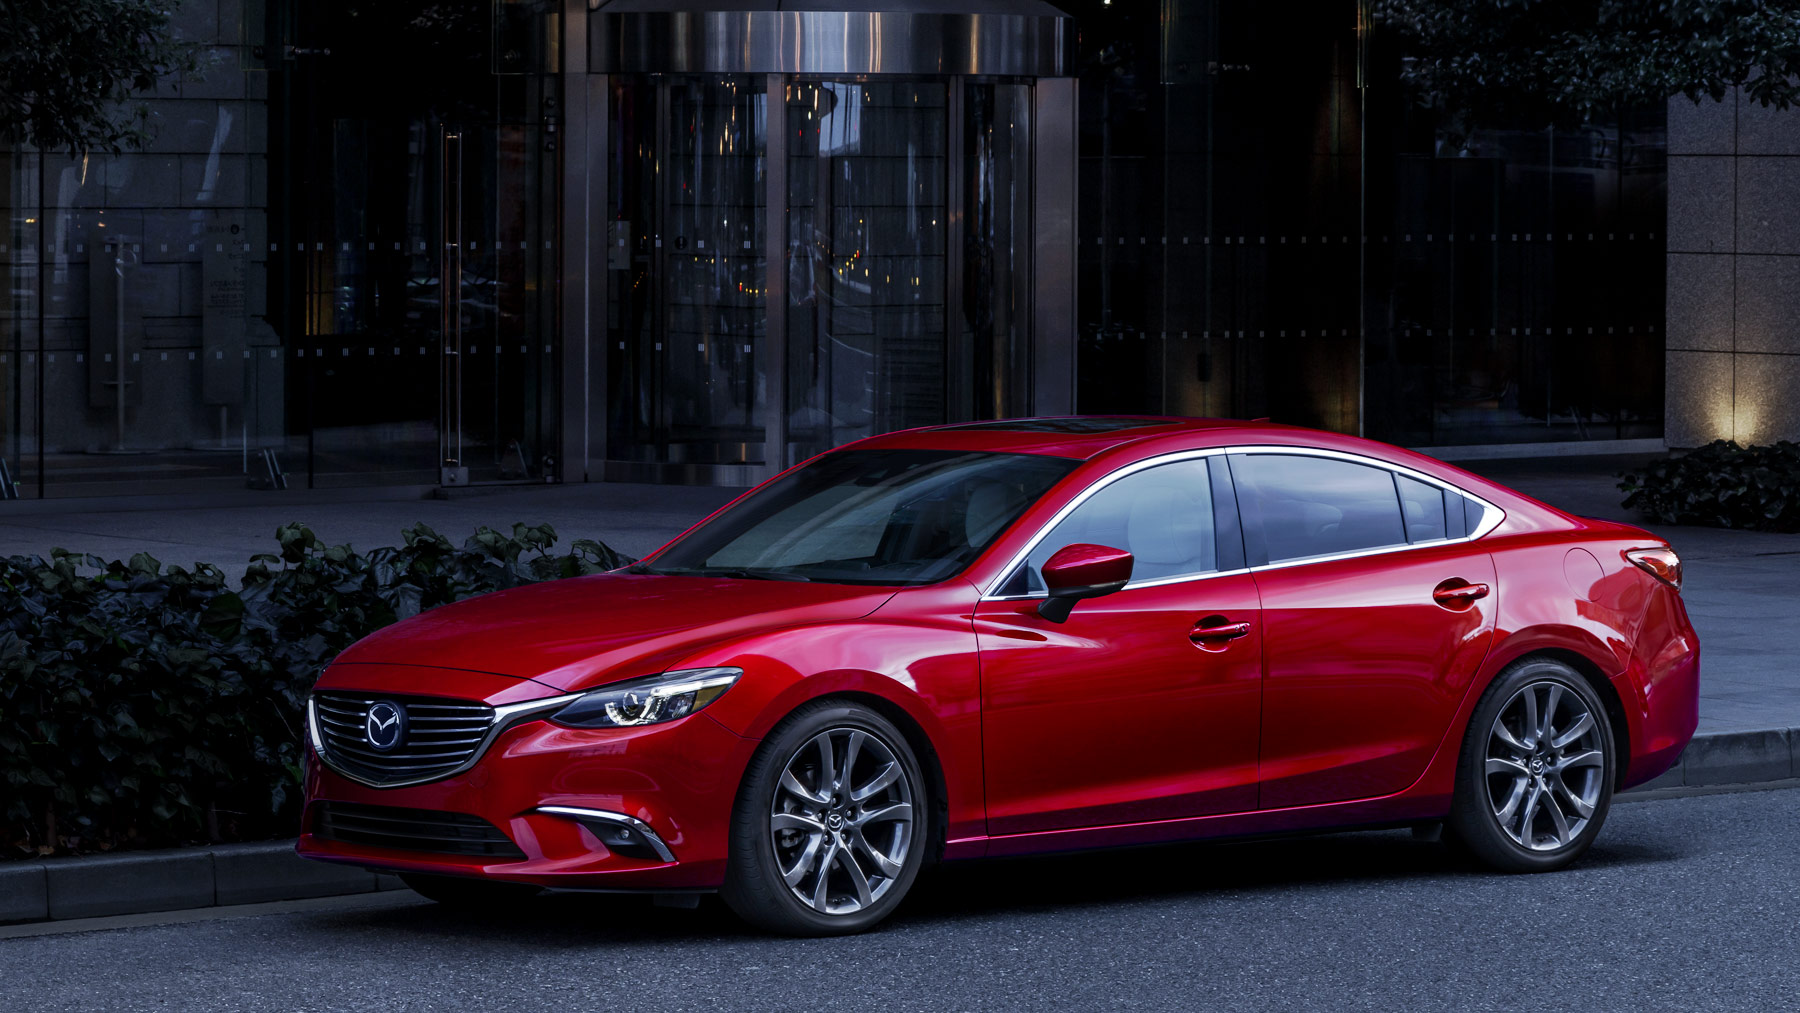 2017 mazda 6 mid size cars pictures videos mazda usa. Black Bedroom Furniture Sets. Home Design Ideas